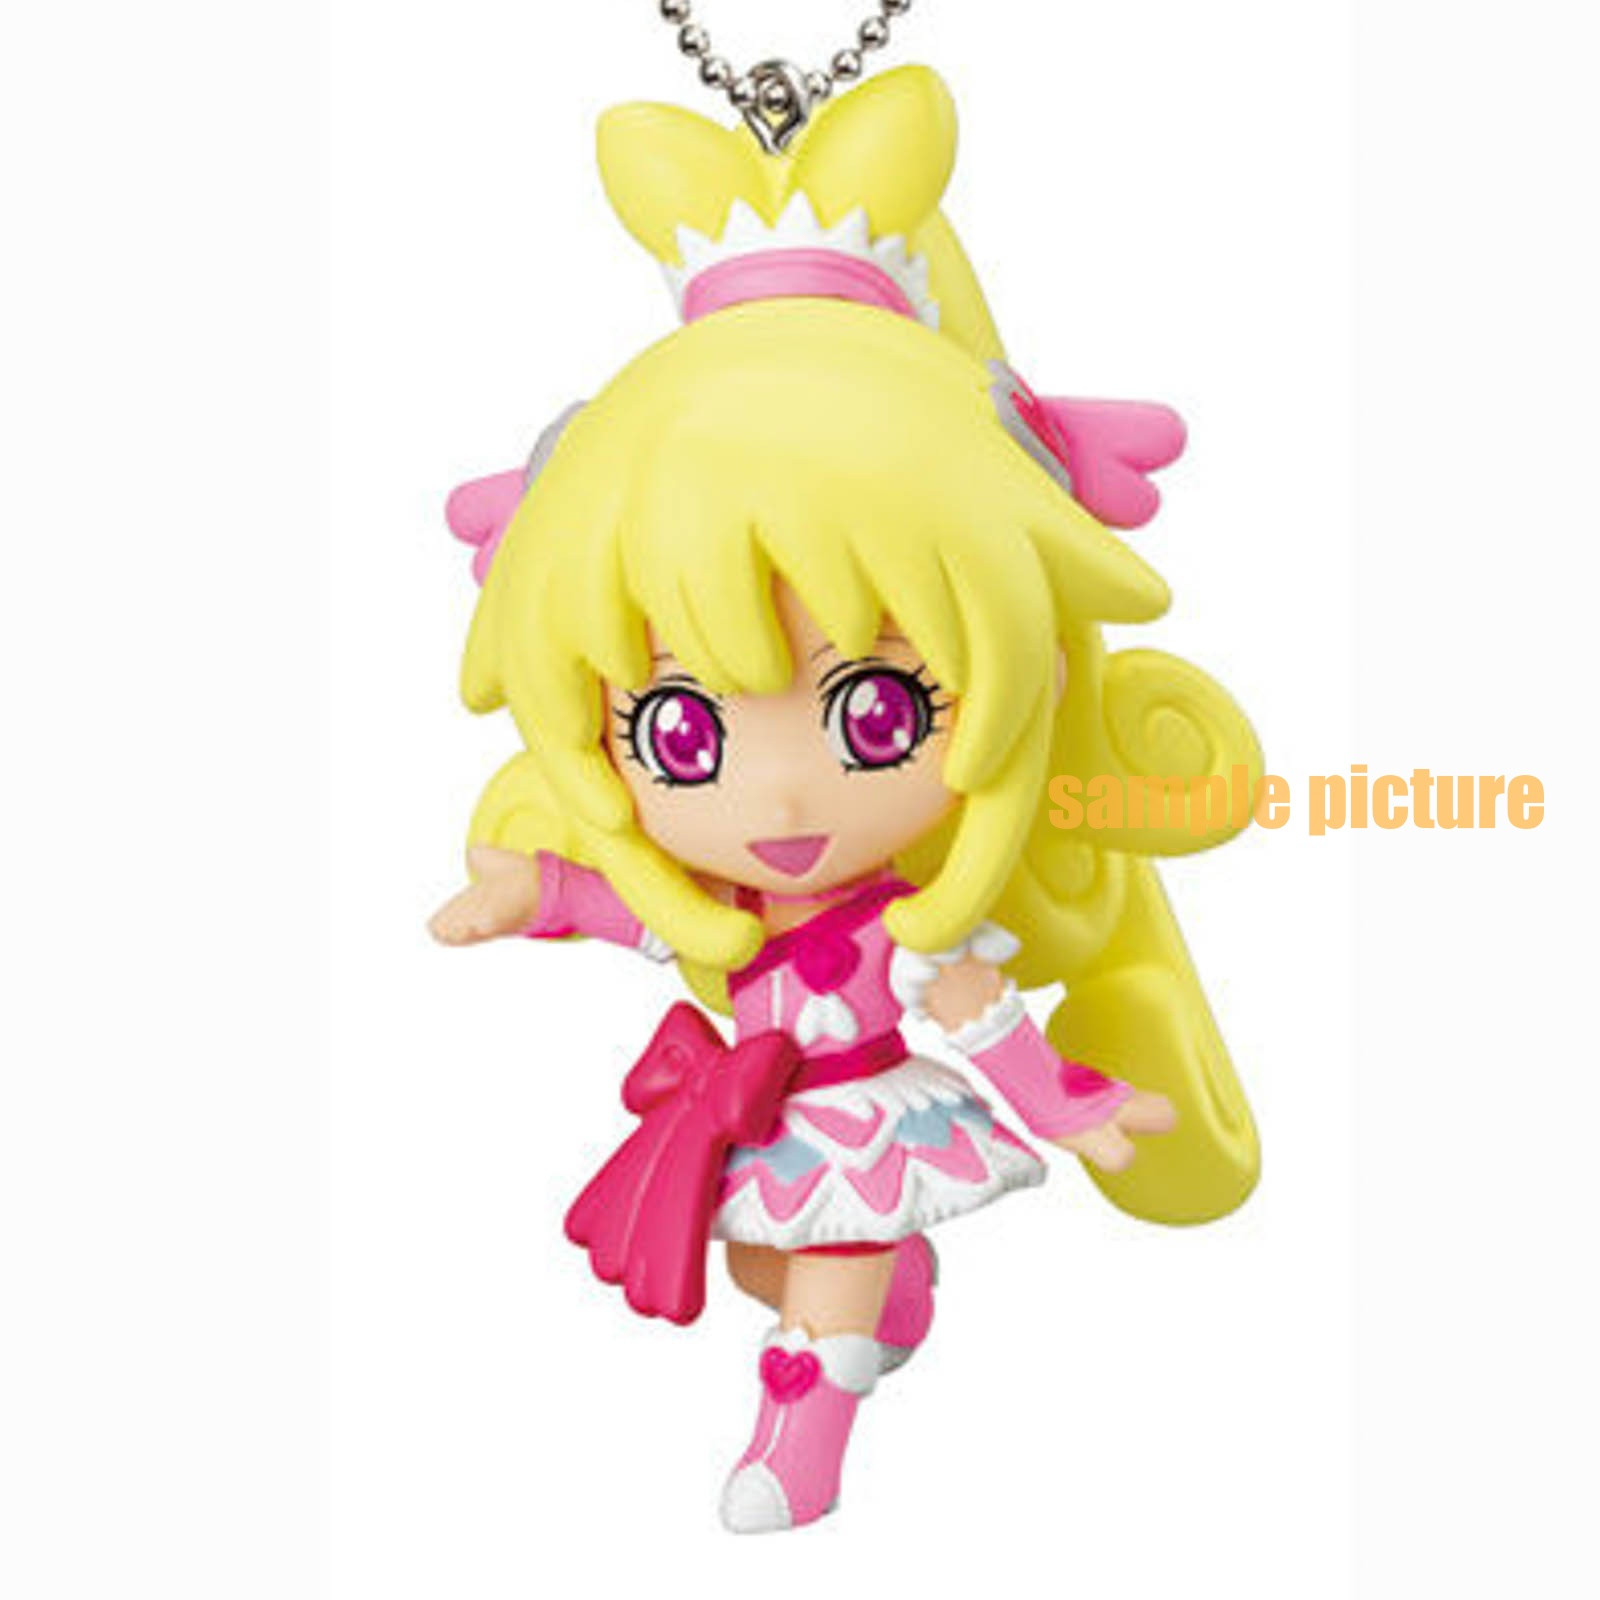 Doki Doki! PreCure Cure Heart Mascot Figure Ball Keychain JAPAN ANIME